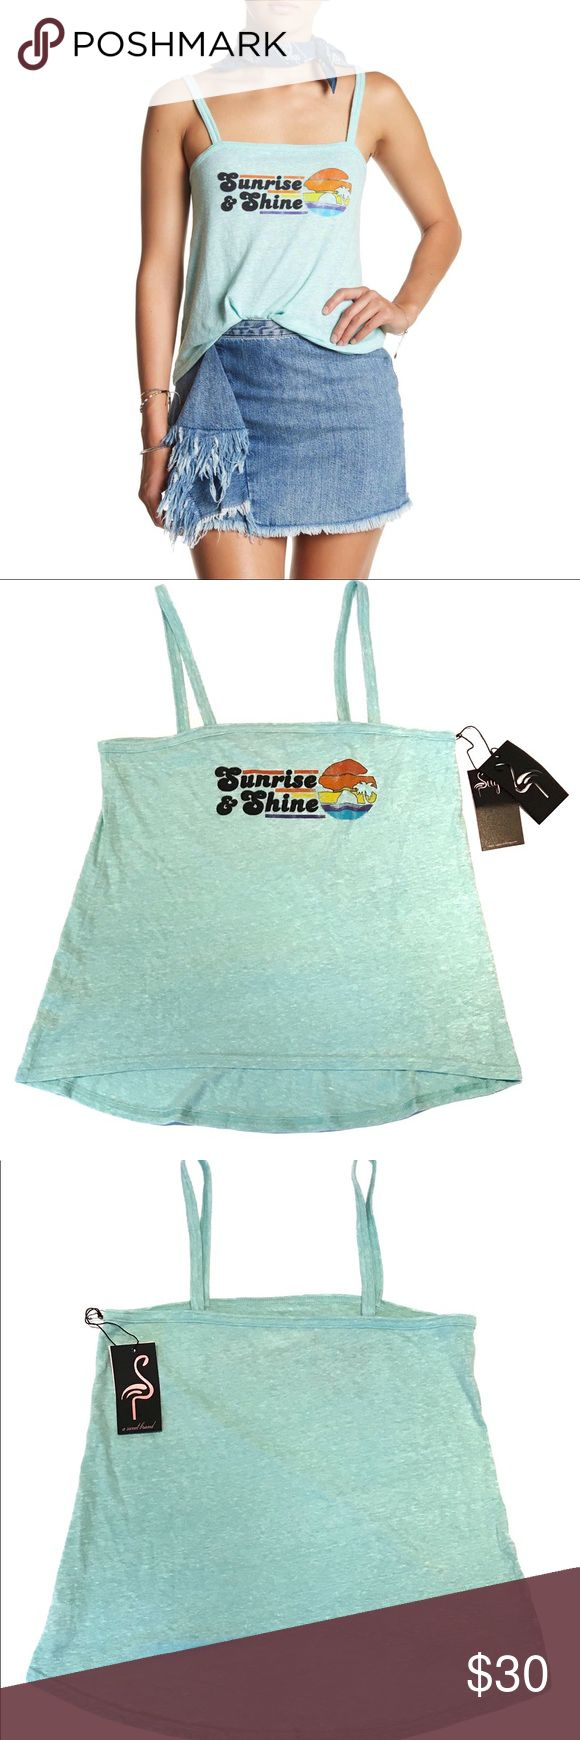 """Sugar Graphic Print Tank Top Sunrise and Shine Sugar Sleeveless Graphic Tank Top Official company color is turquoise...it is a light turquoise not a dark turquoise  70's vibe """"Sunrise and Shine"""" spelled out in felt material Size Large front length: 24 inches back length: 27 inches slightly longer in the back NWT $65 sugar Tops Tank Tops"""